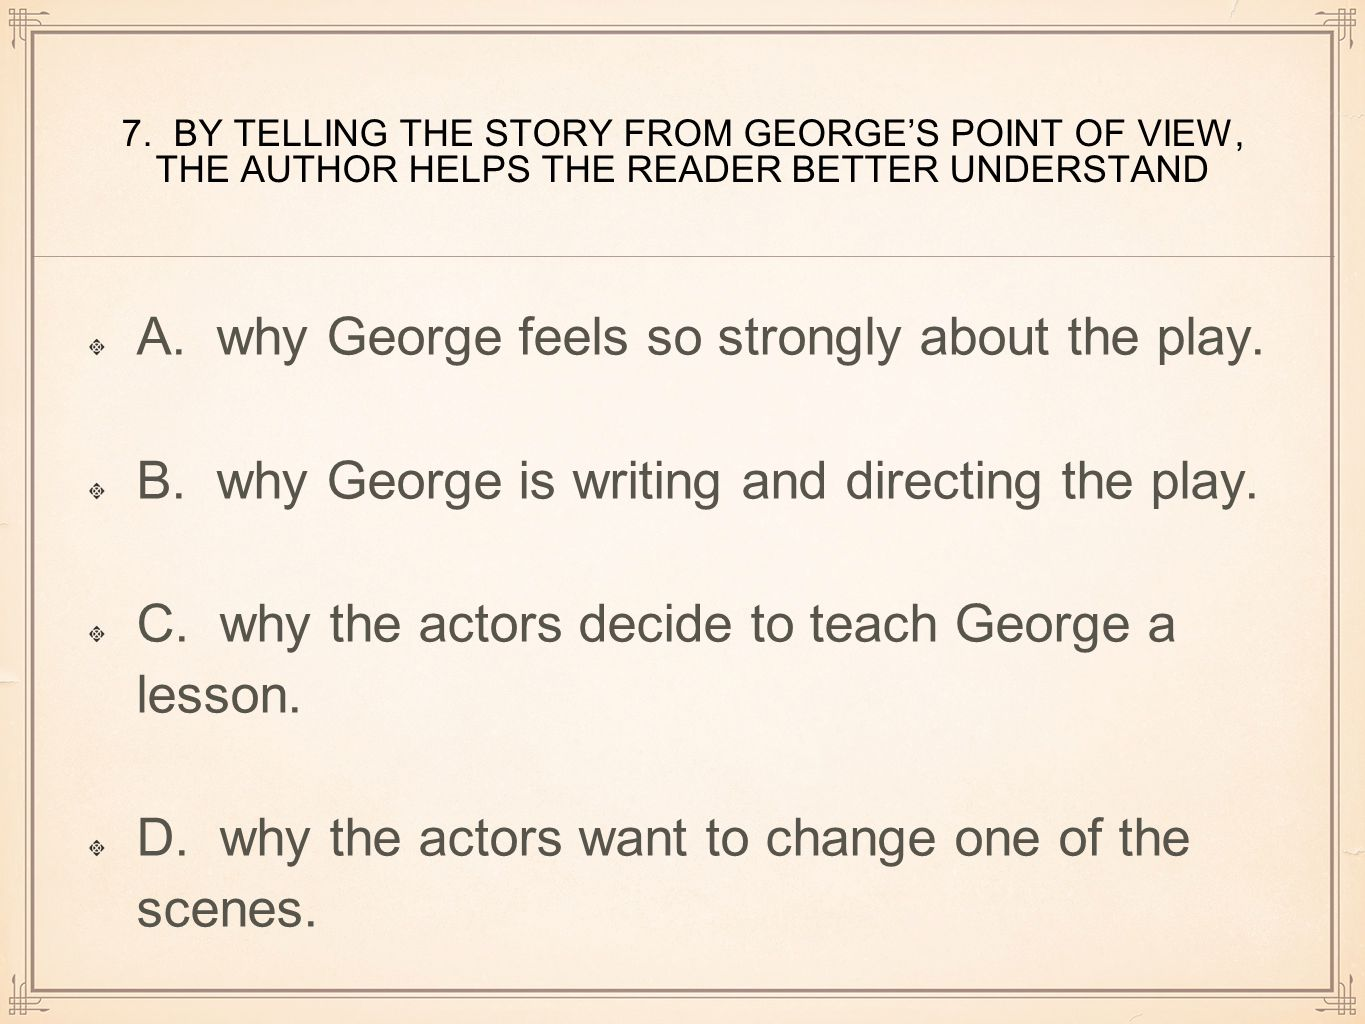 7. BY TELLING THE STORY FROM GEORGE'S POINT OF VIEW, THE AUTHOR HELPS THE READER BETTER UNDERSTAND A. why George feels so strongly about the play. B.